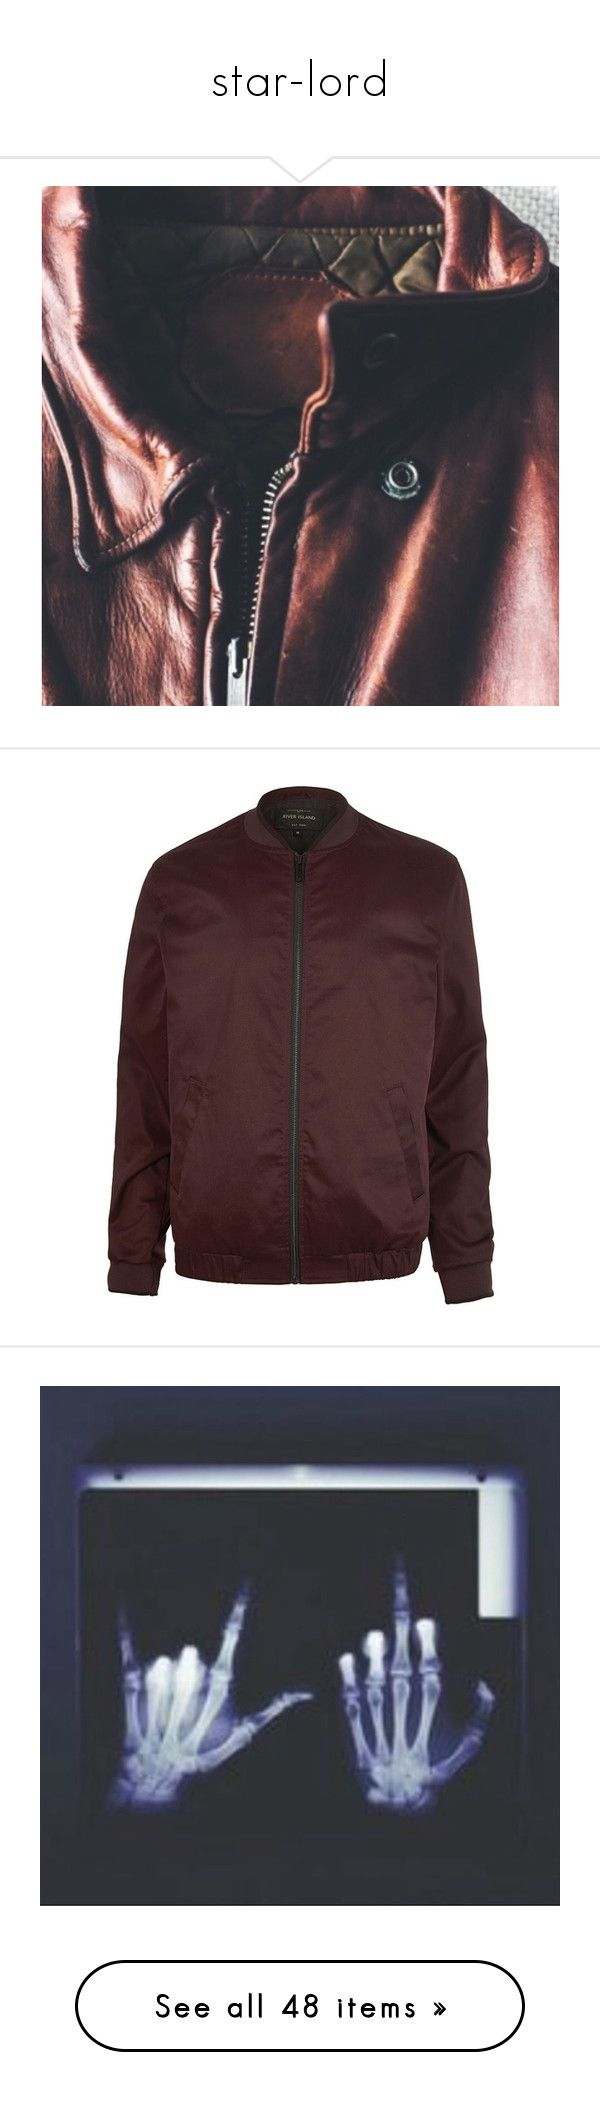 """""""star-lord"""" by daestars ❤ liked on Polyvore featuring men's fashion, men's clothing, men's outerwear, men's jackets, jackets, mens burgundy bomber jacket, mens burgundy jacket, pants, flat-front pants and zipper trousers"""